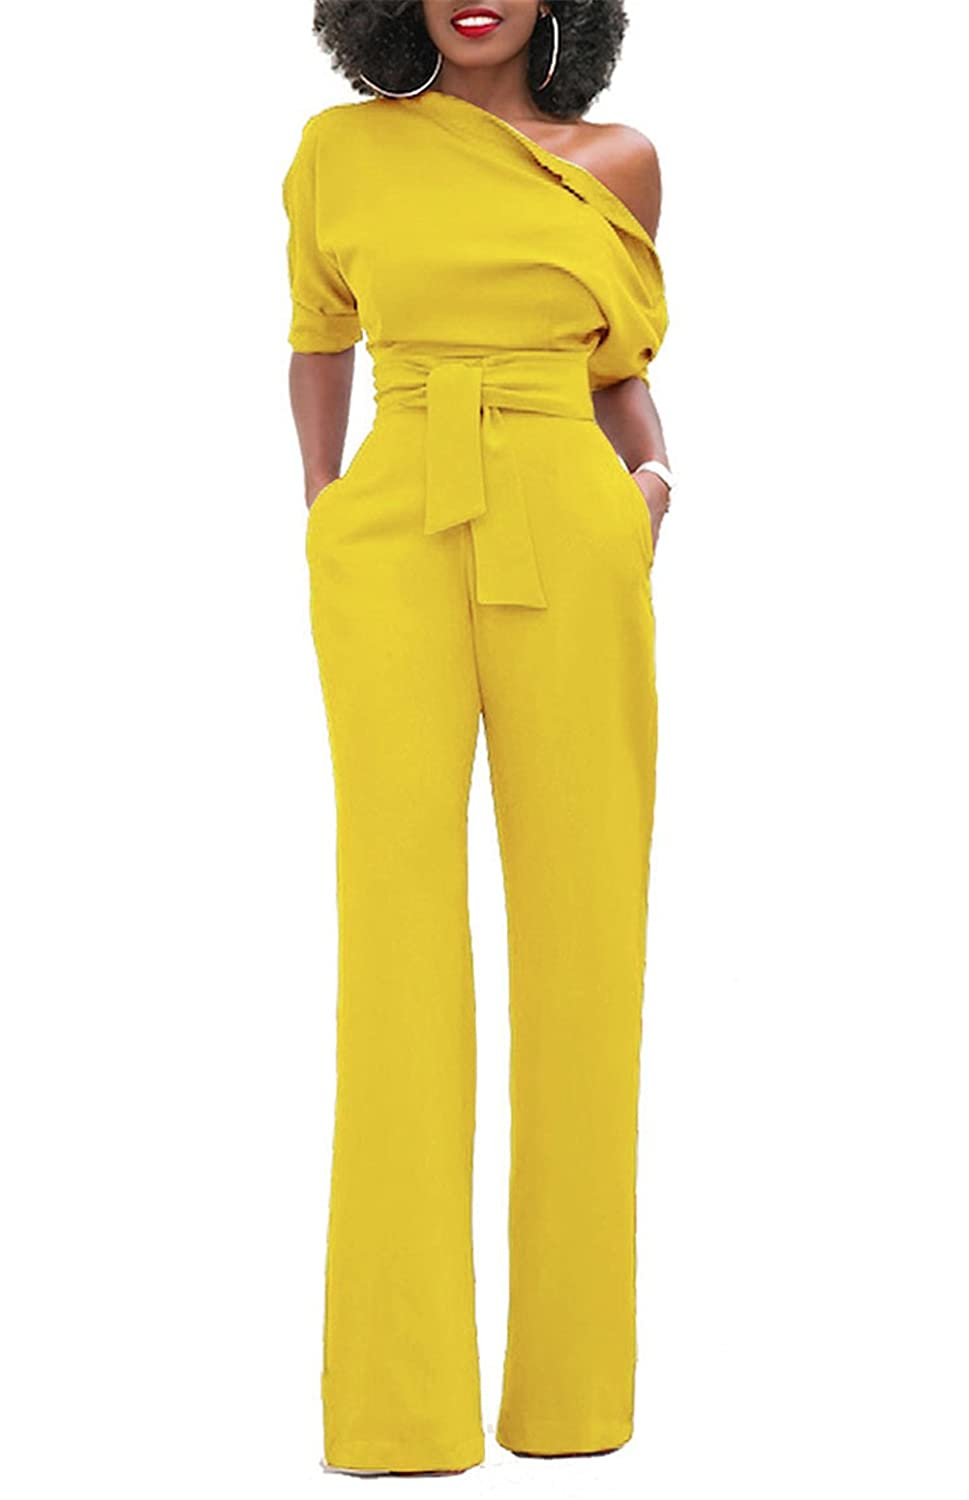 d2dfcd154cbe ONLYSHE Womens Sexy Half Sleeve One Shoulder Tied Waist Bodycon Party  Clubwear Jumpsuit Rompers